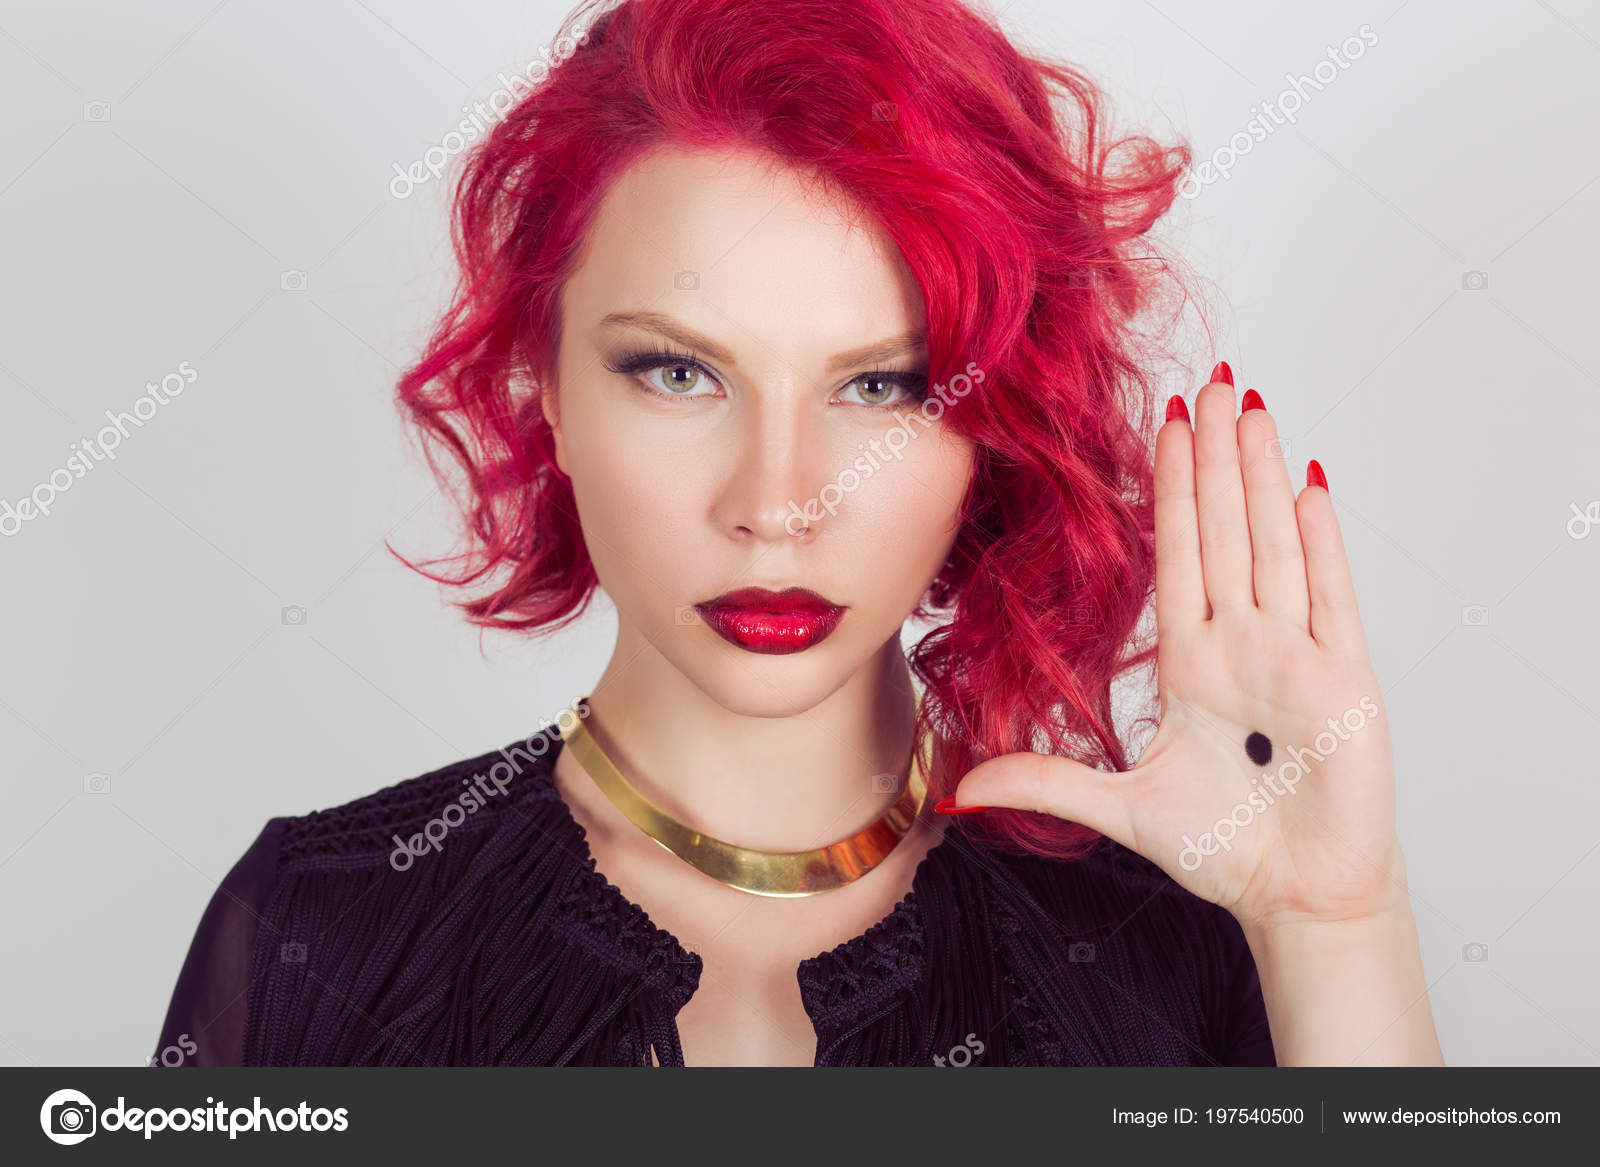 Woman Black Dot Her Palm Give Signal Domestic Violence Red Stock